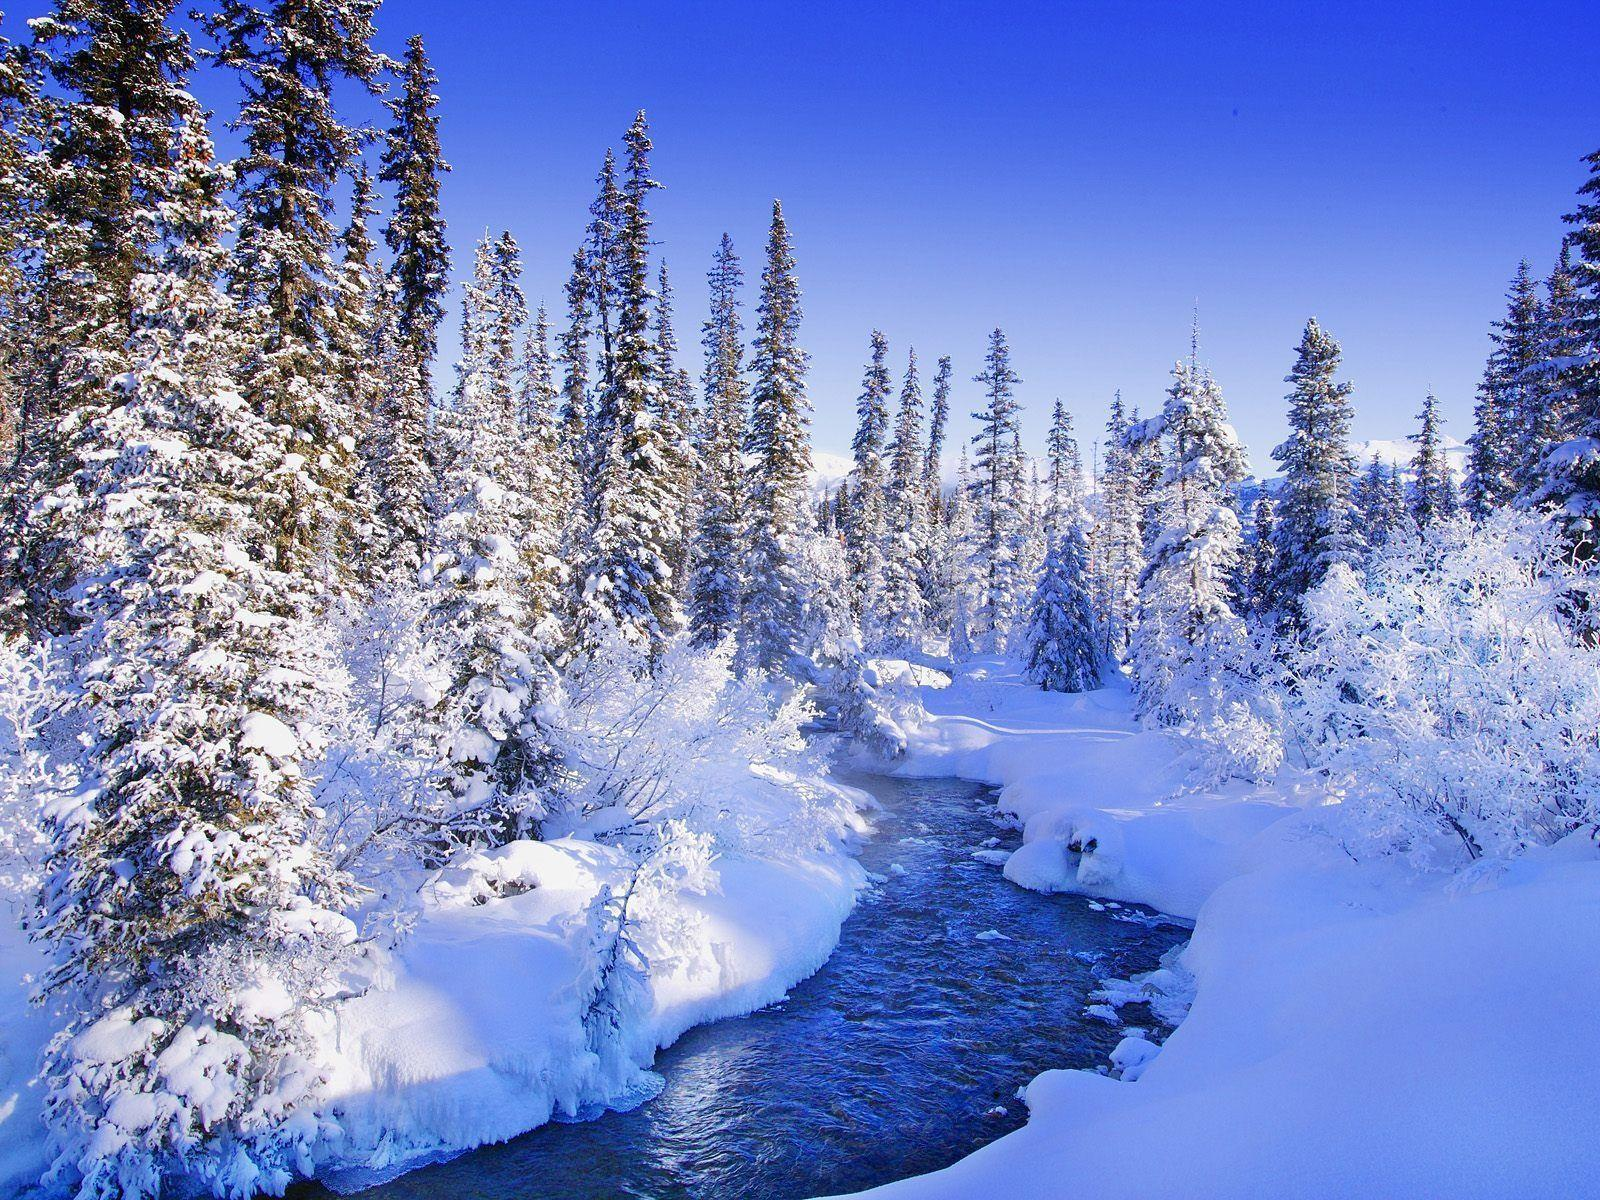 winter time wallpaper cool - photo #16